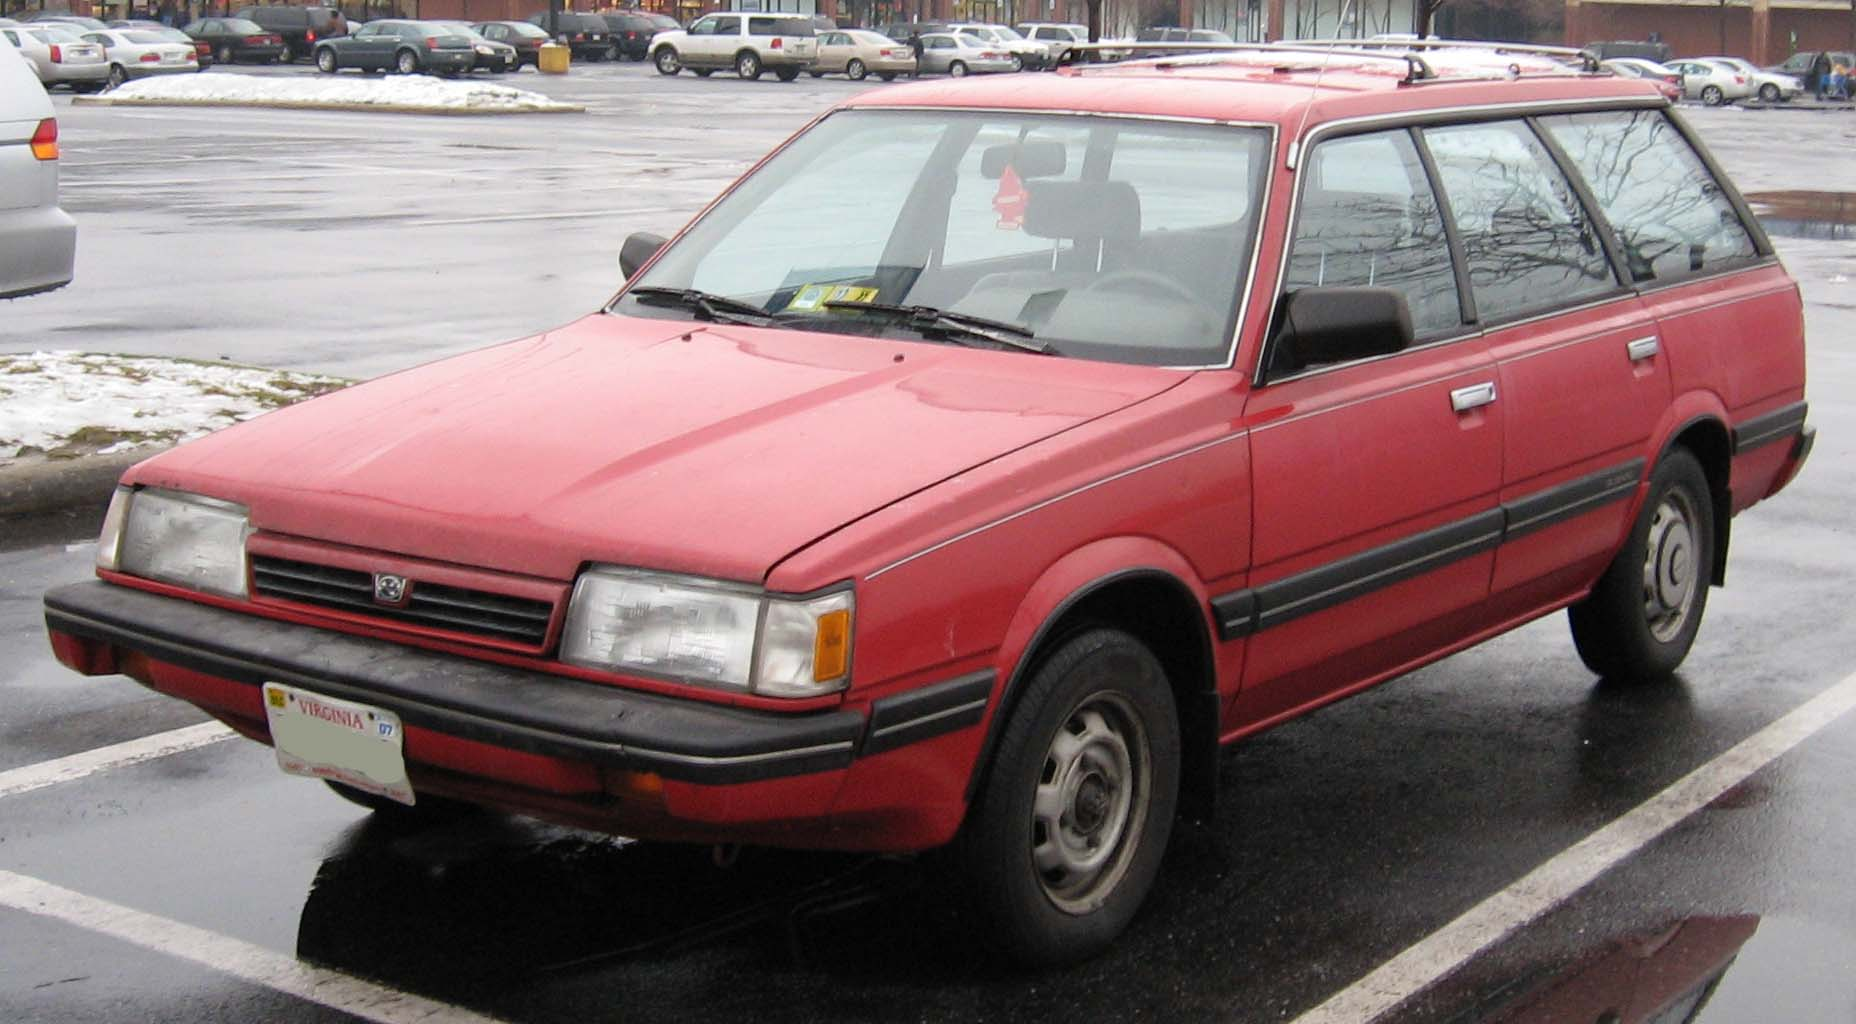 File:Subaru-GL-Wagon.jpg - Wikimedia Commons